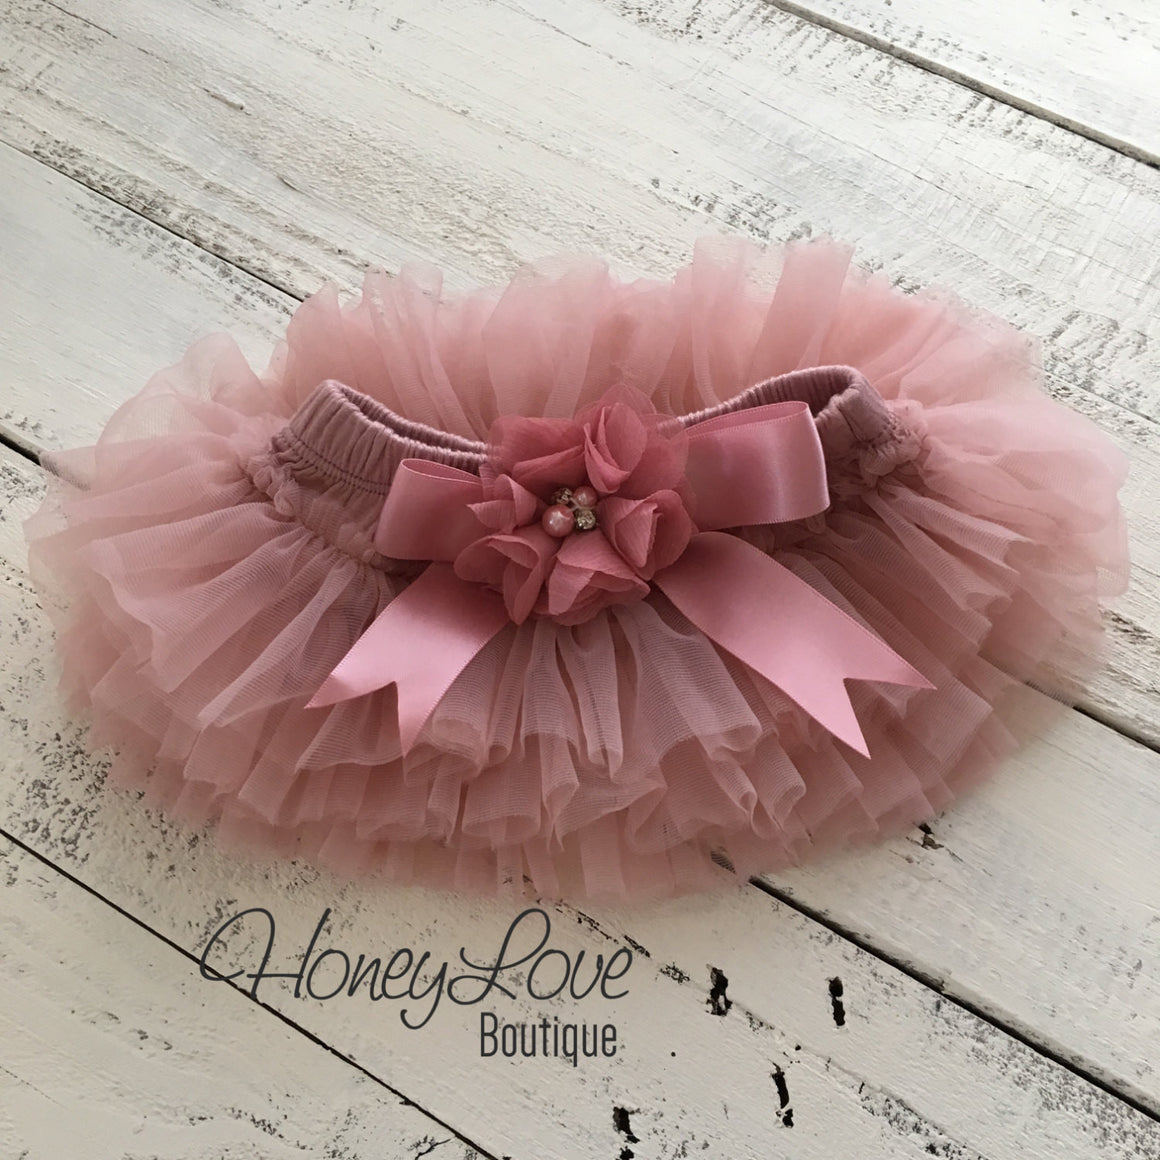 Vintage Pink tutu skirt bloomers and gold glitter headband - embellished bloomers